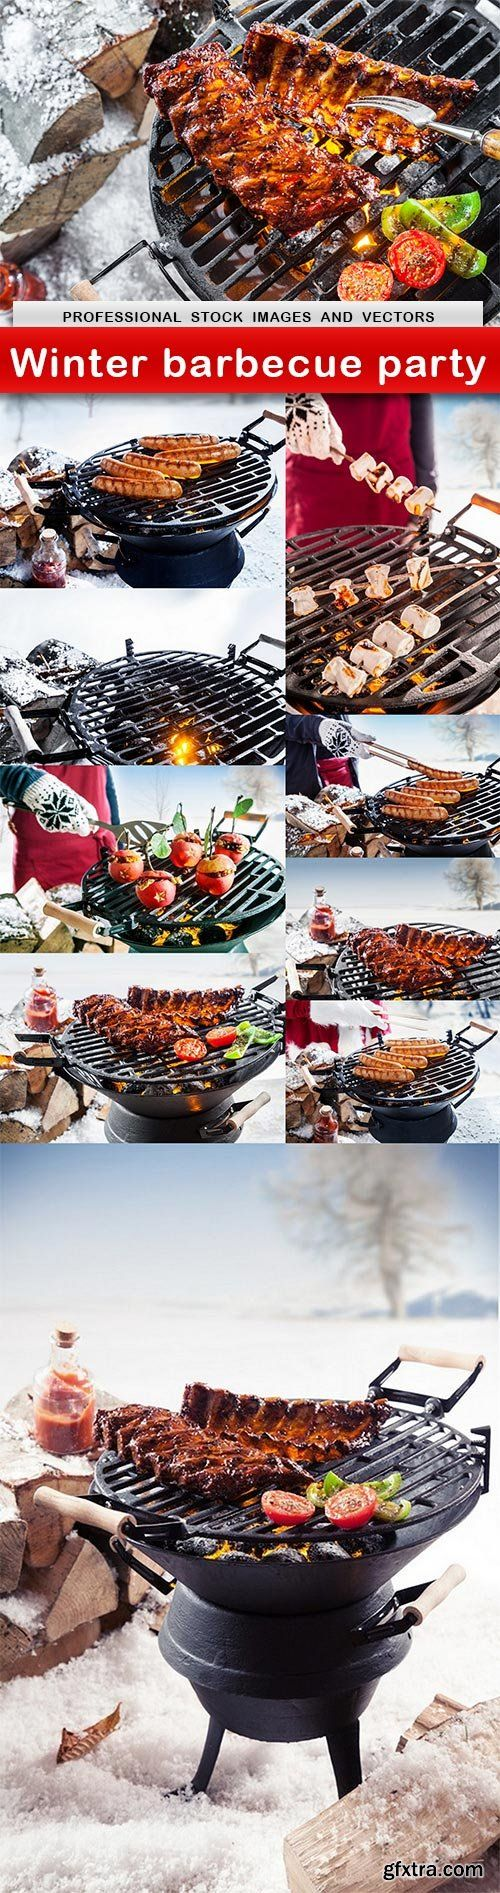 Winter barbecue party - 10 UHQ JPEG